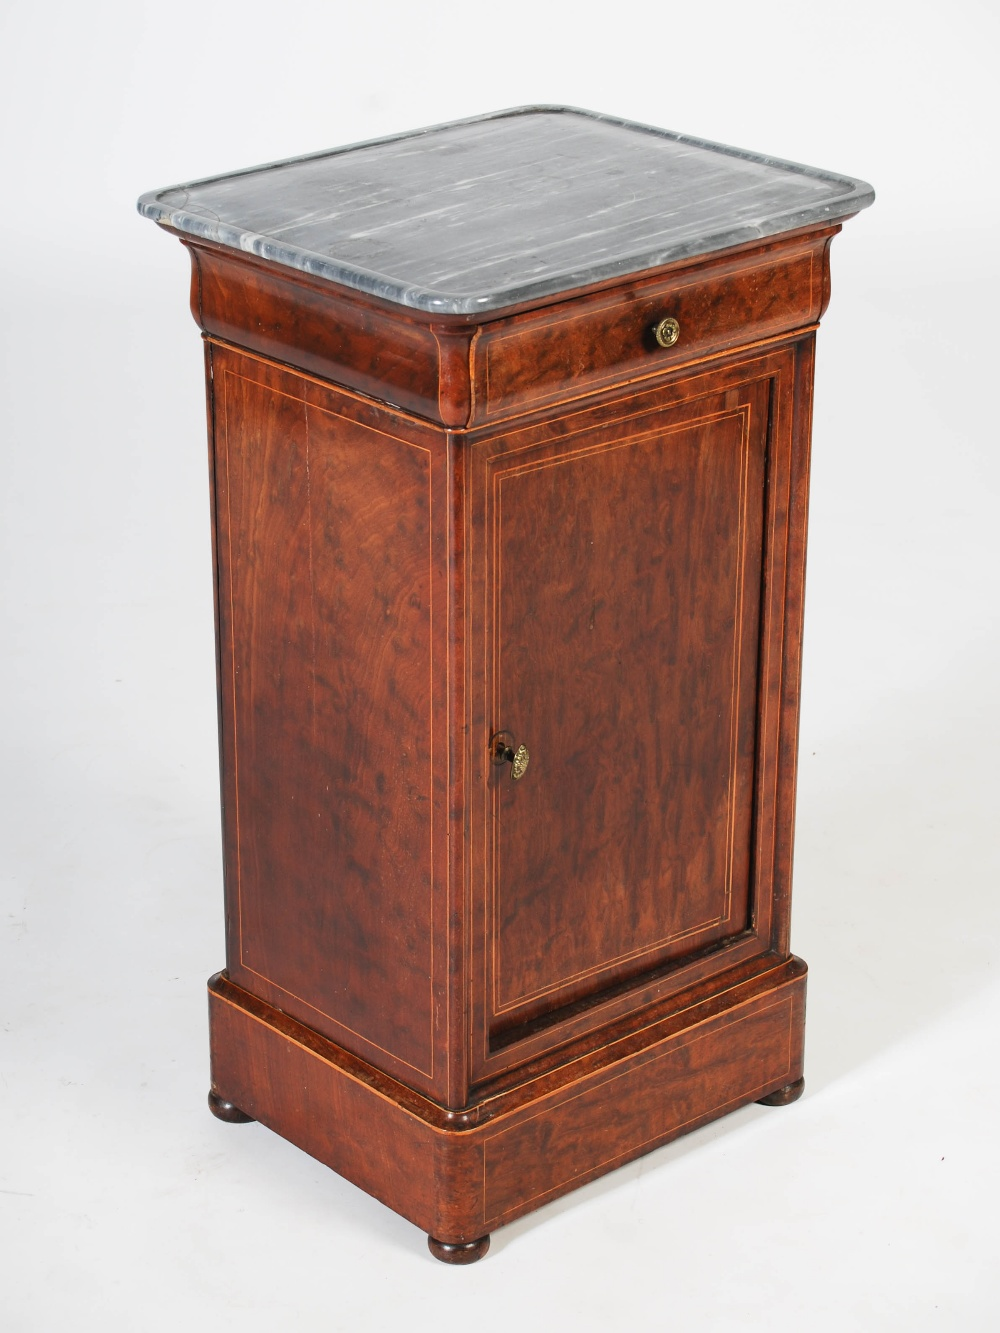 Lot 32 - A 19th century French mahogany and boxwood lined marble top bedside cupboard, the grey and white